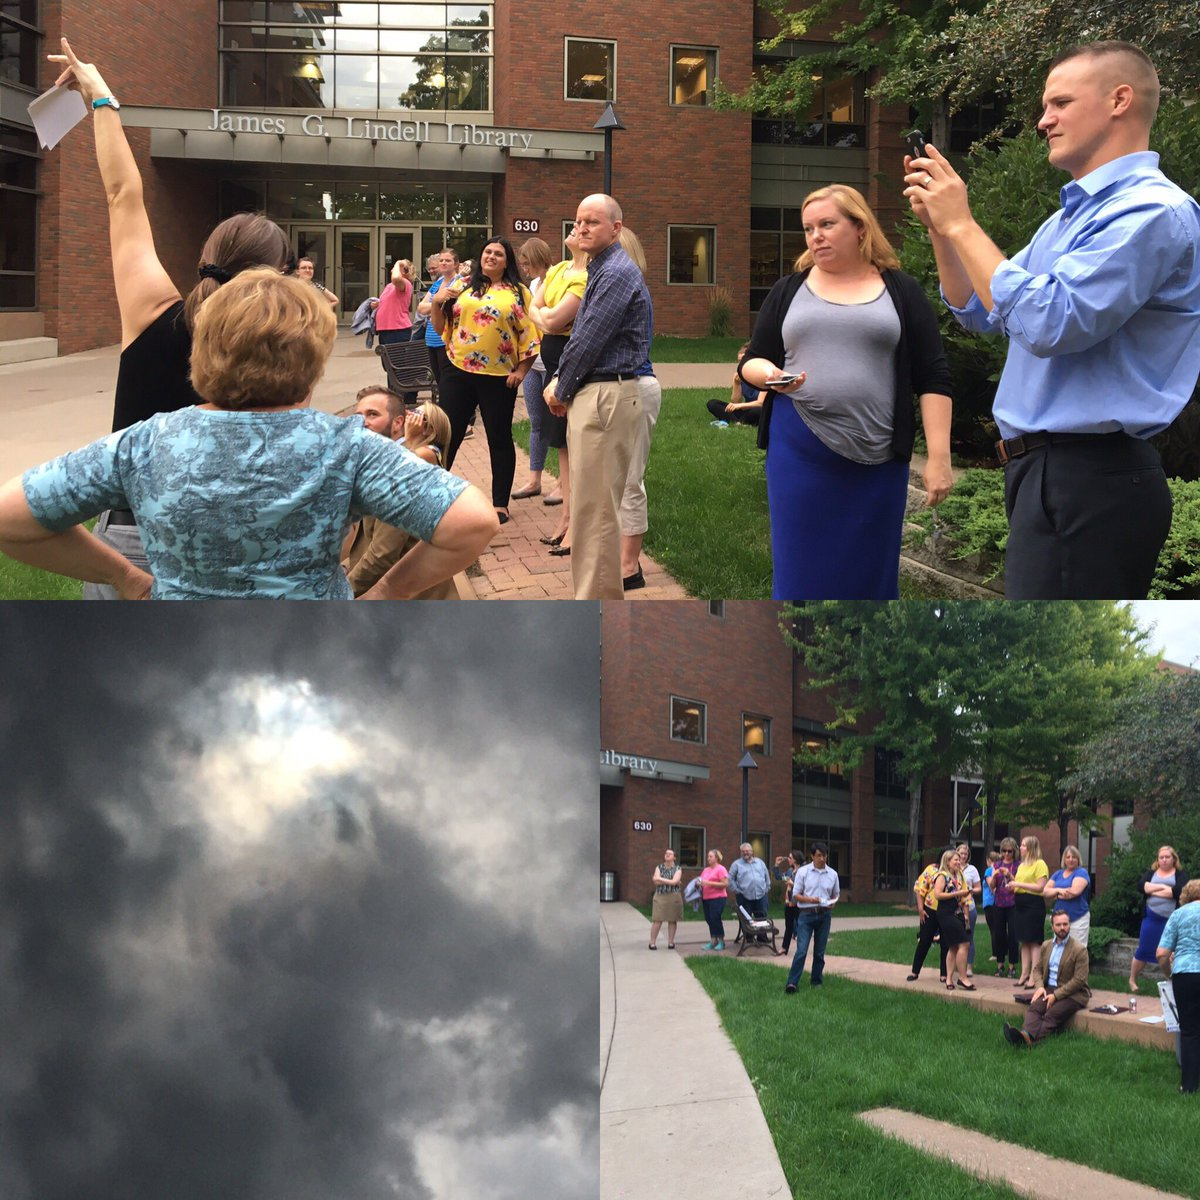 The @AugsburgU community gathers to see if we can catch a glimpse of #SolarEclipse17 https://t.co/v8fv4pJI2h